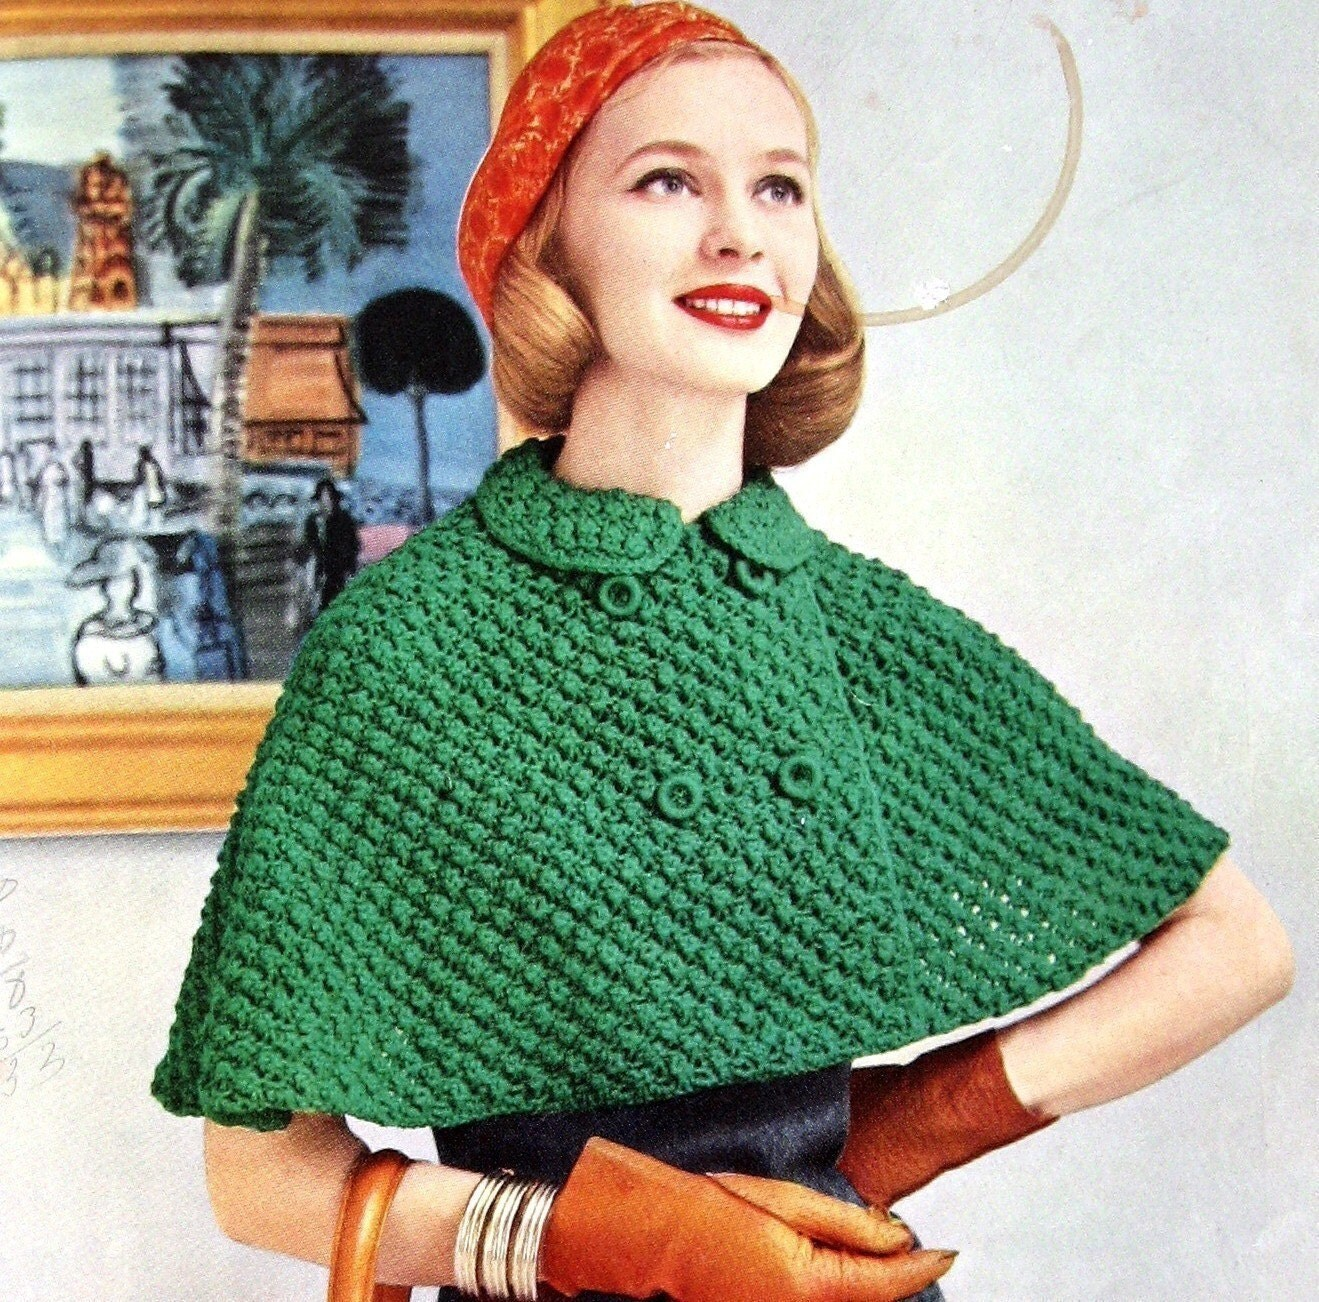 Vogue Knitting Cape Pattern : Knitted Cape Patterns   Design Patterns